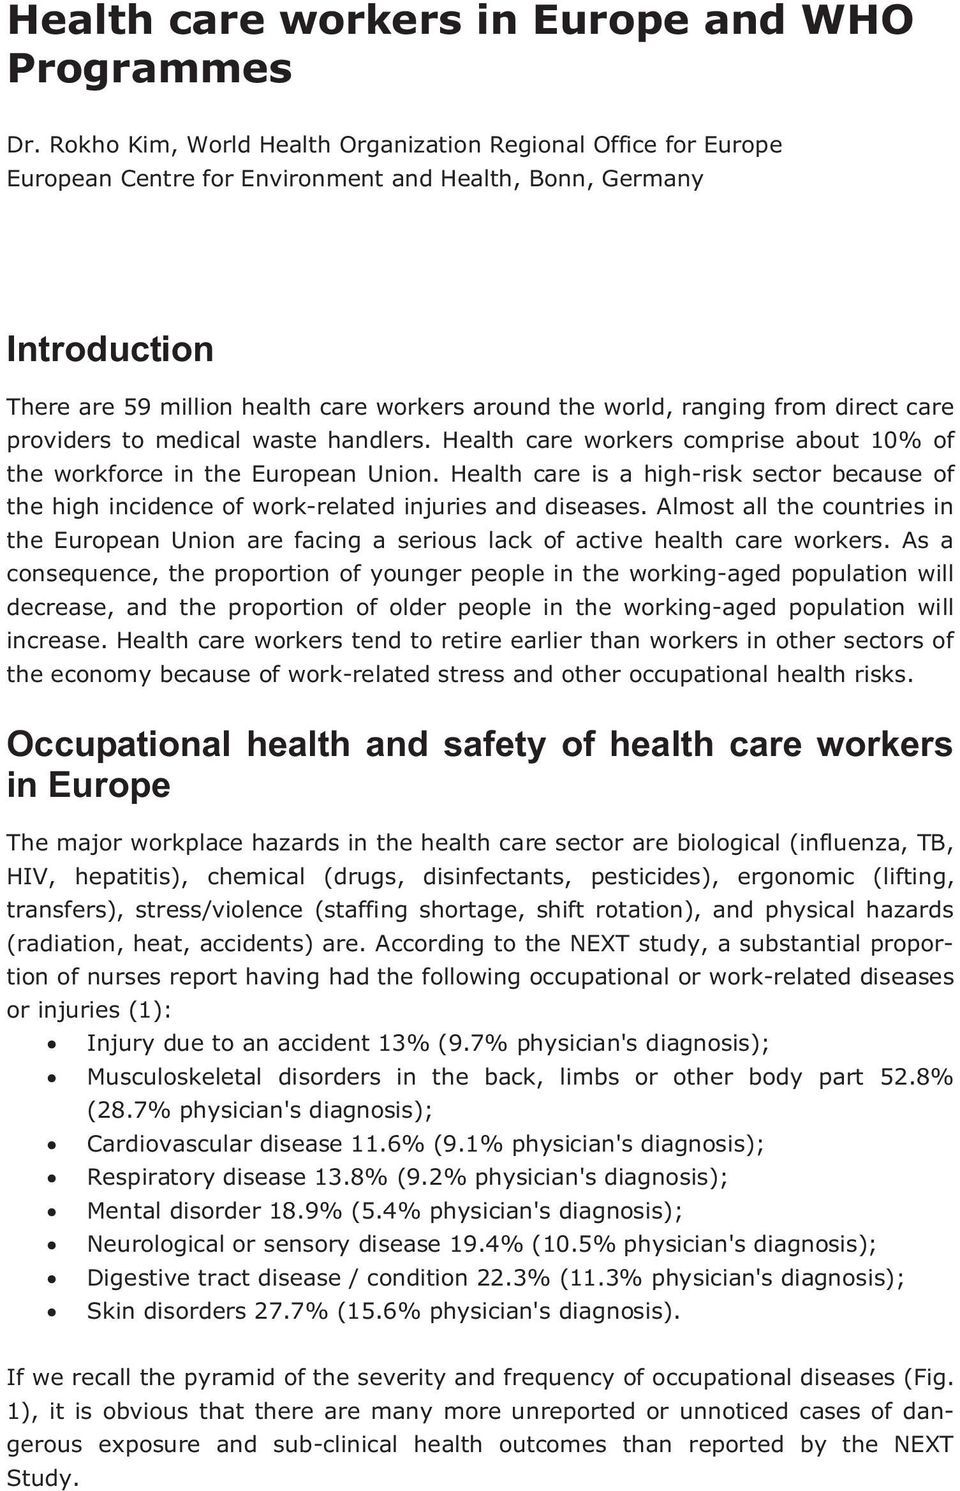 ranging from direct care providers to medical waste handlers. Health care workers comprise about 10% of the workforce in the European Union.